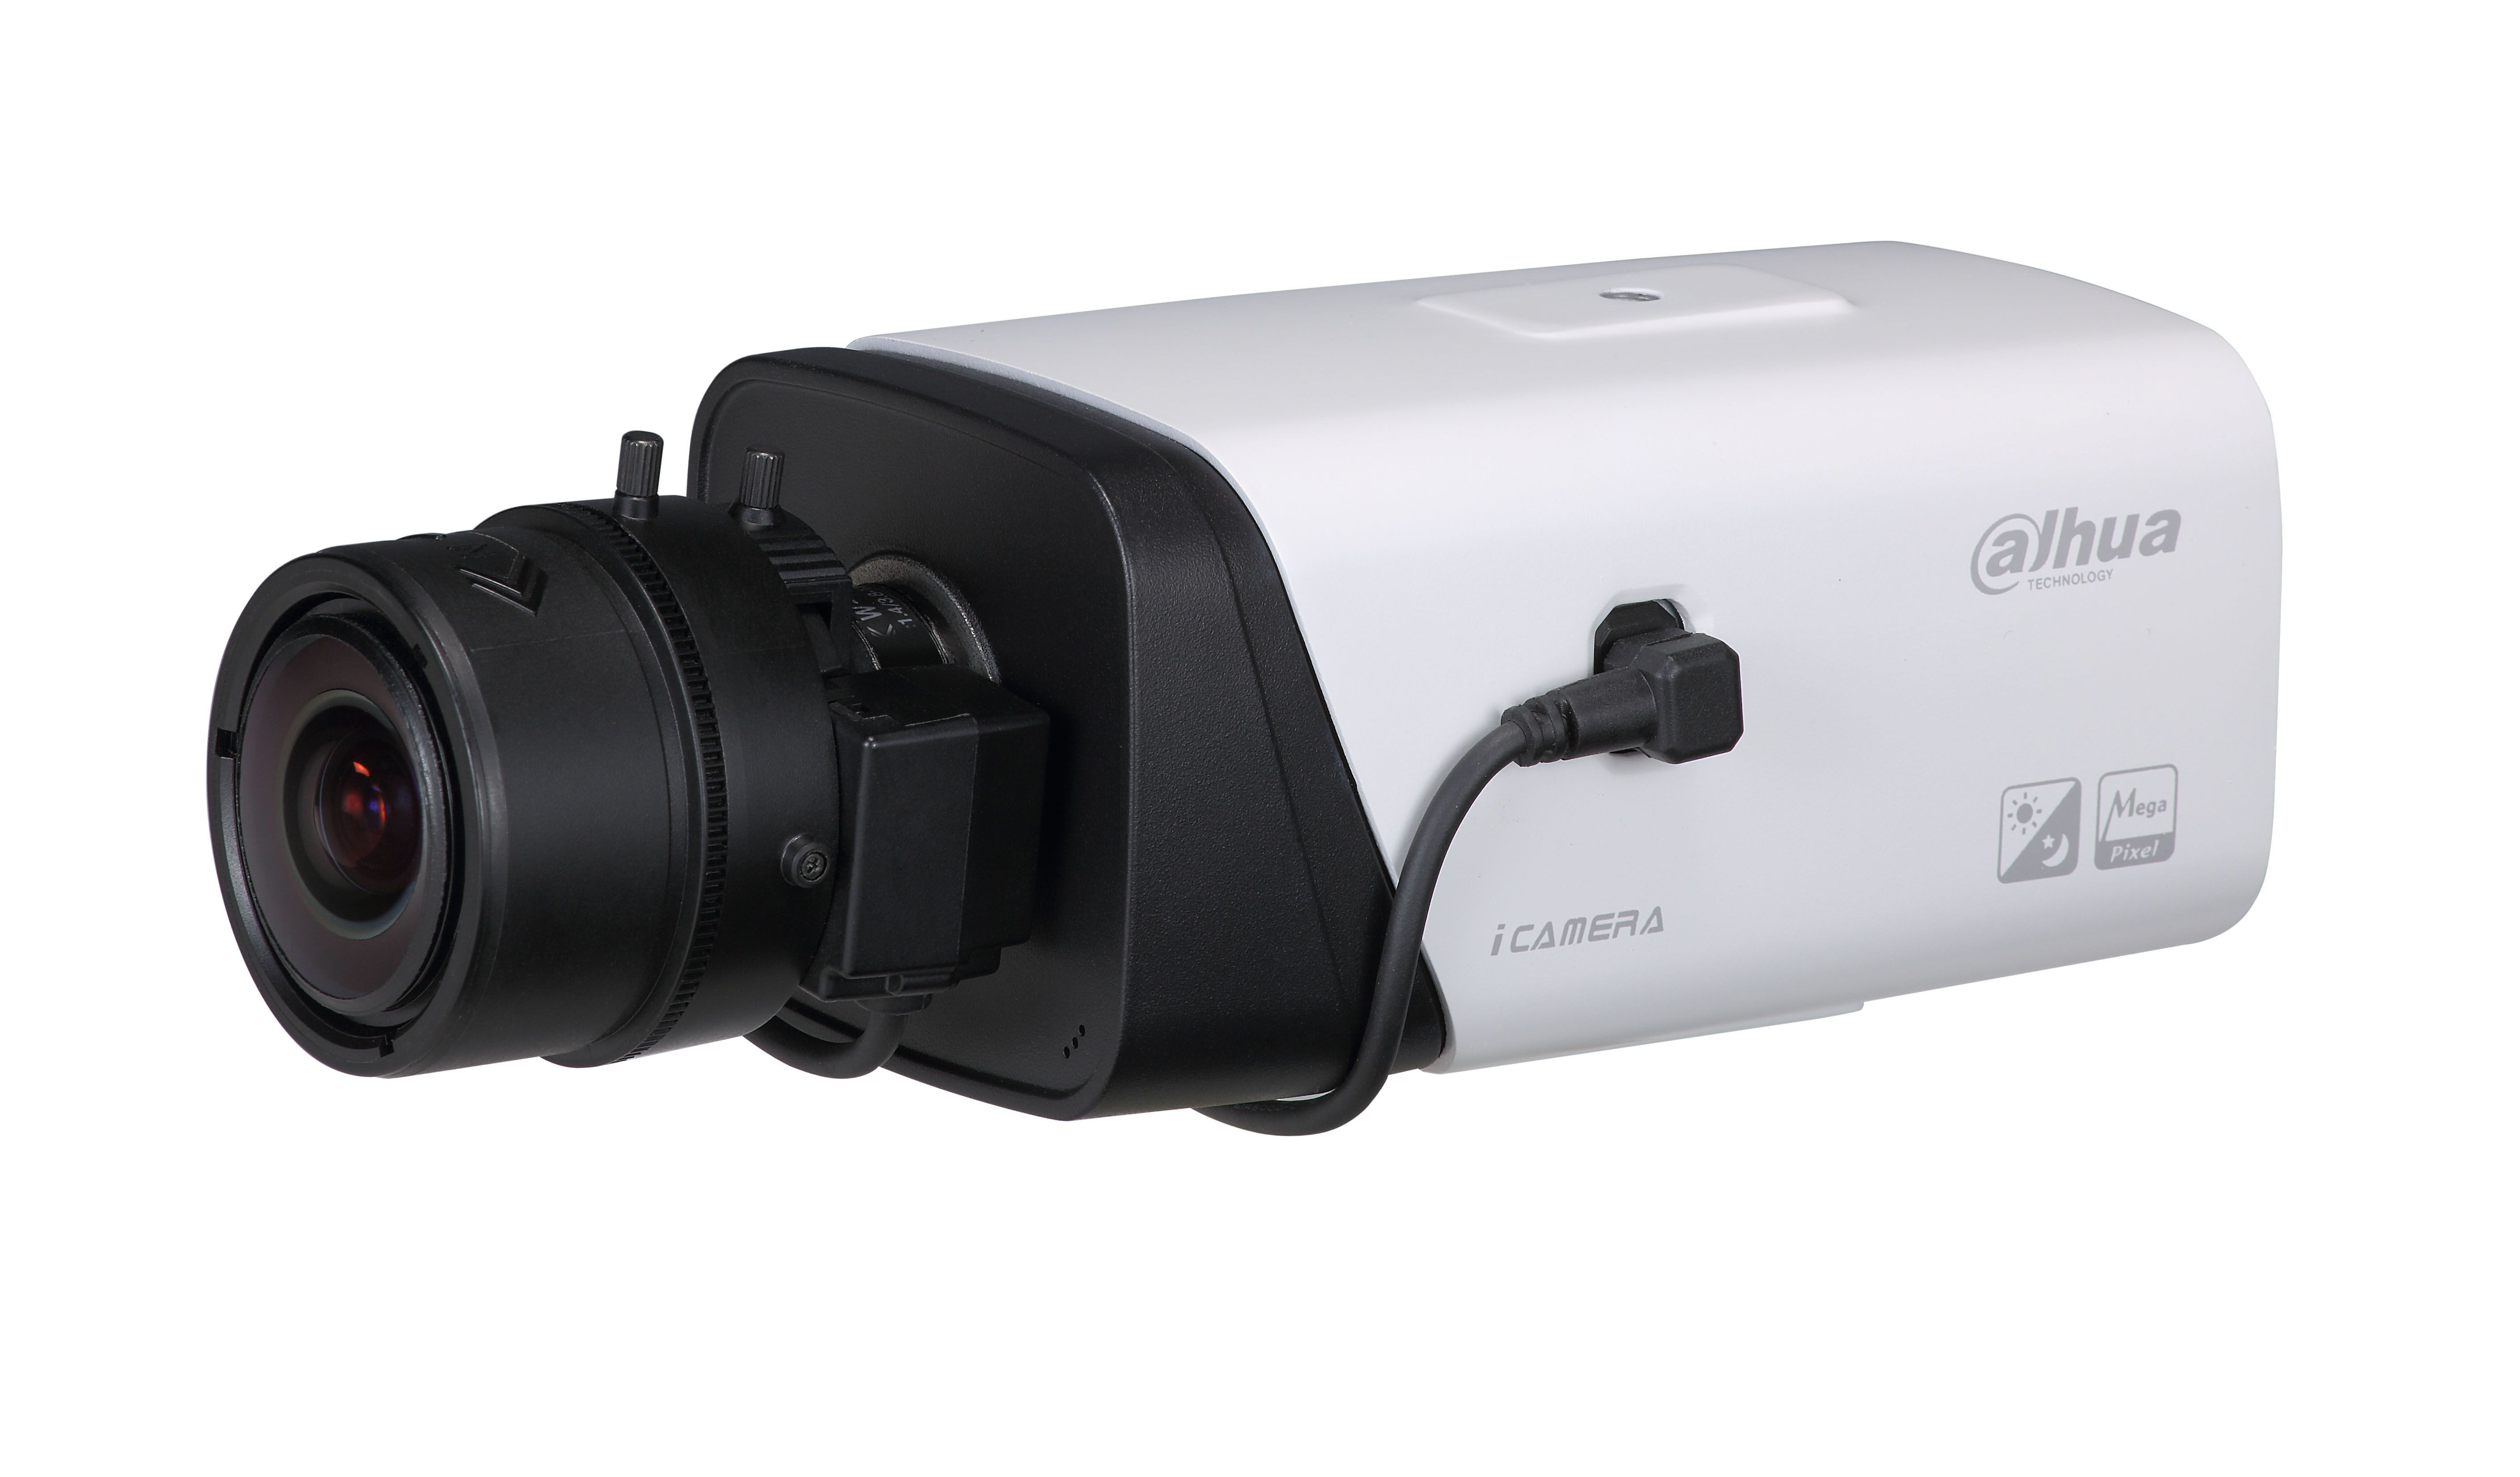 Revo America Coupon Codes 15 off on Surveillance Systems